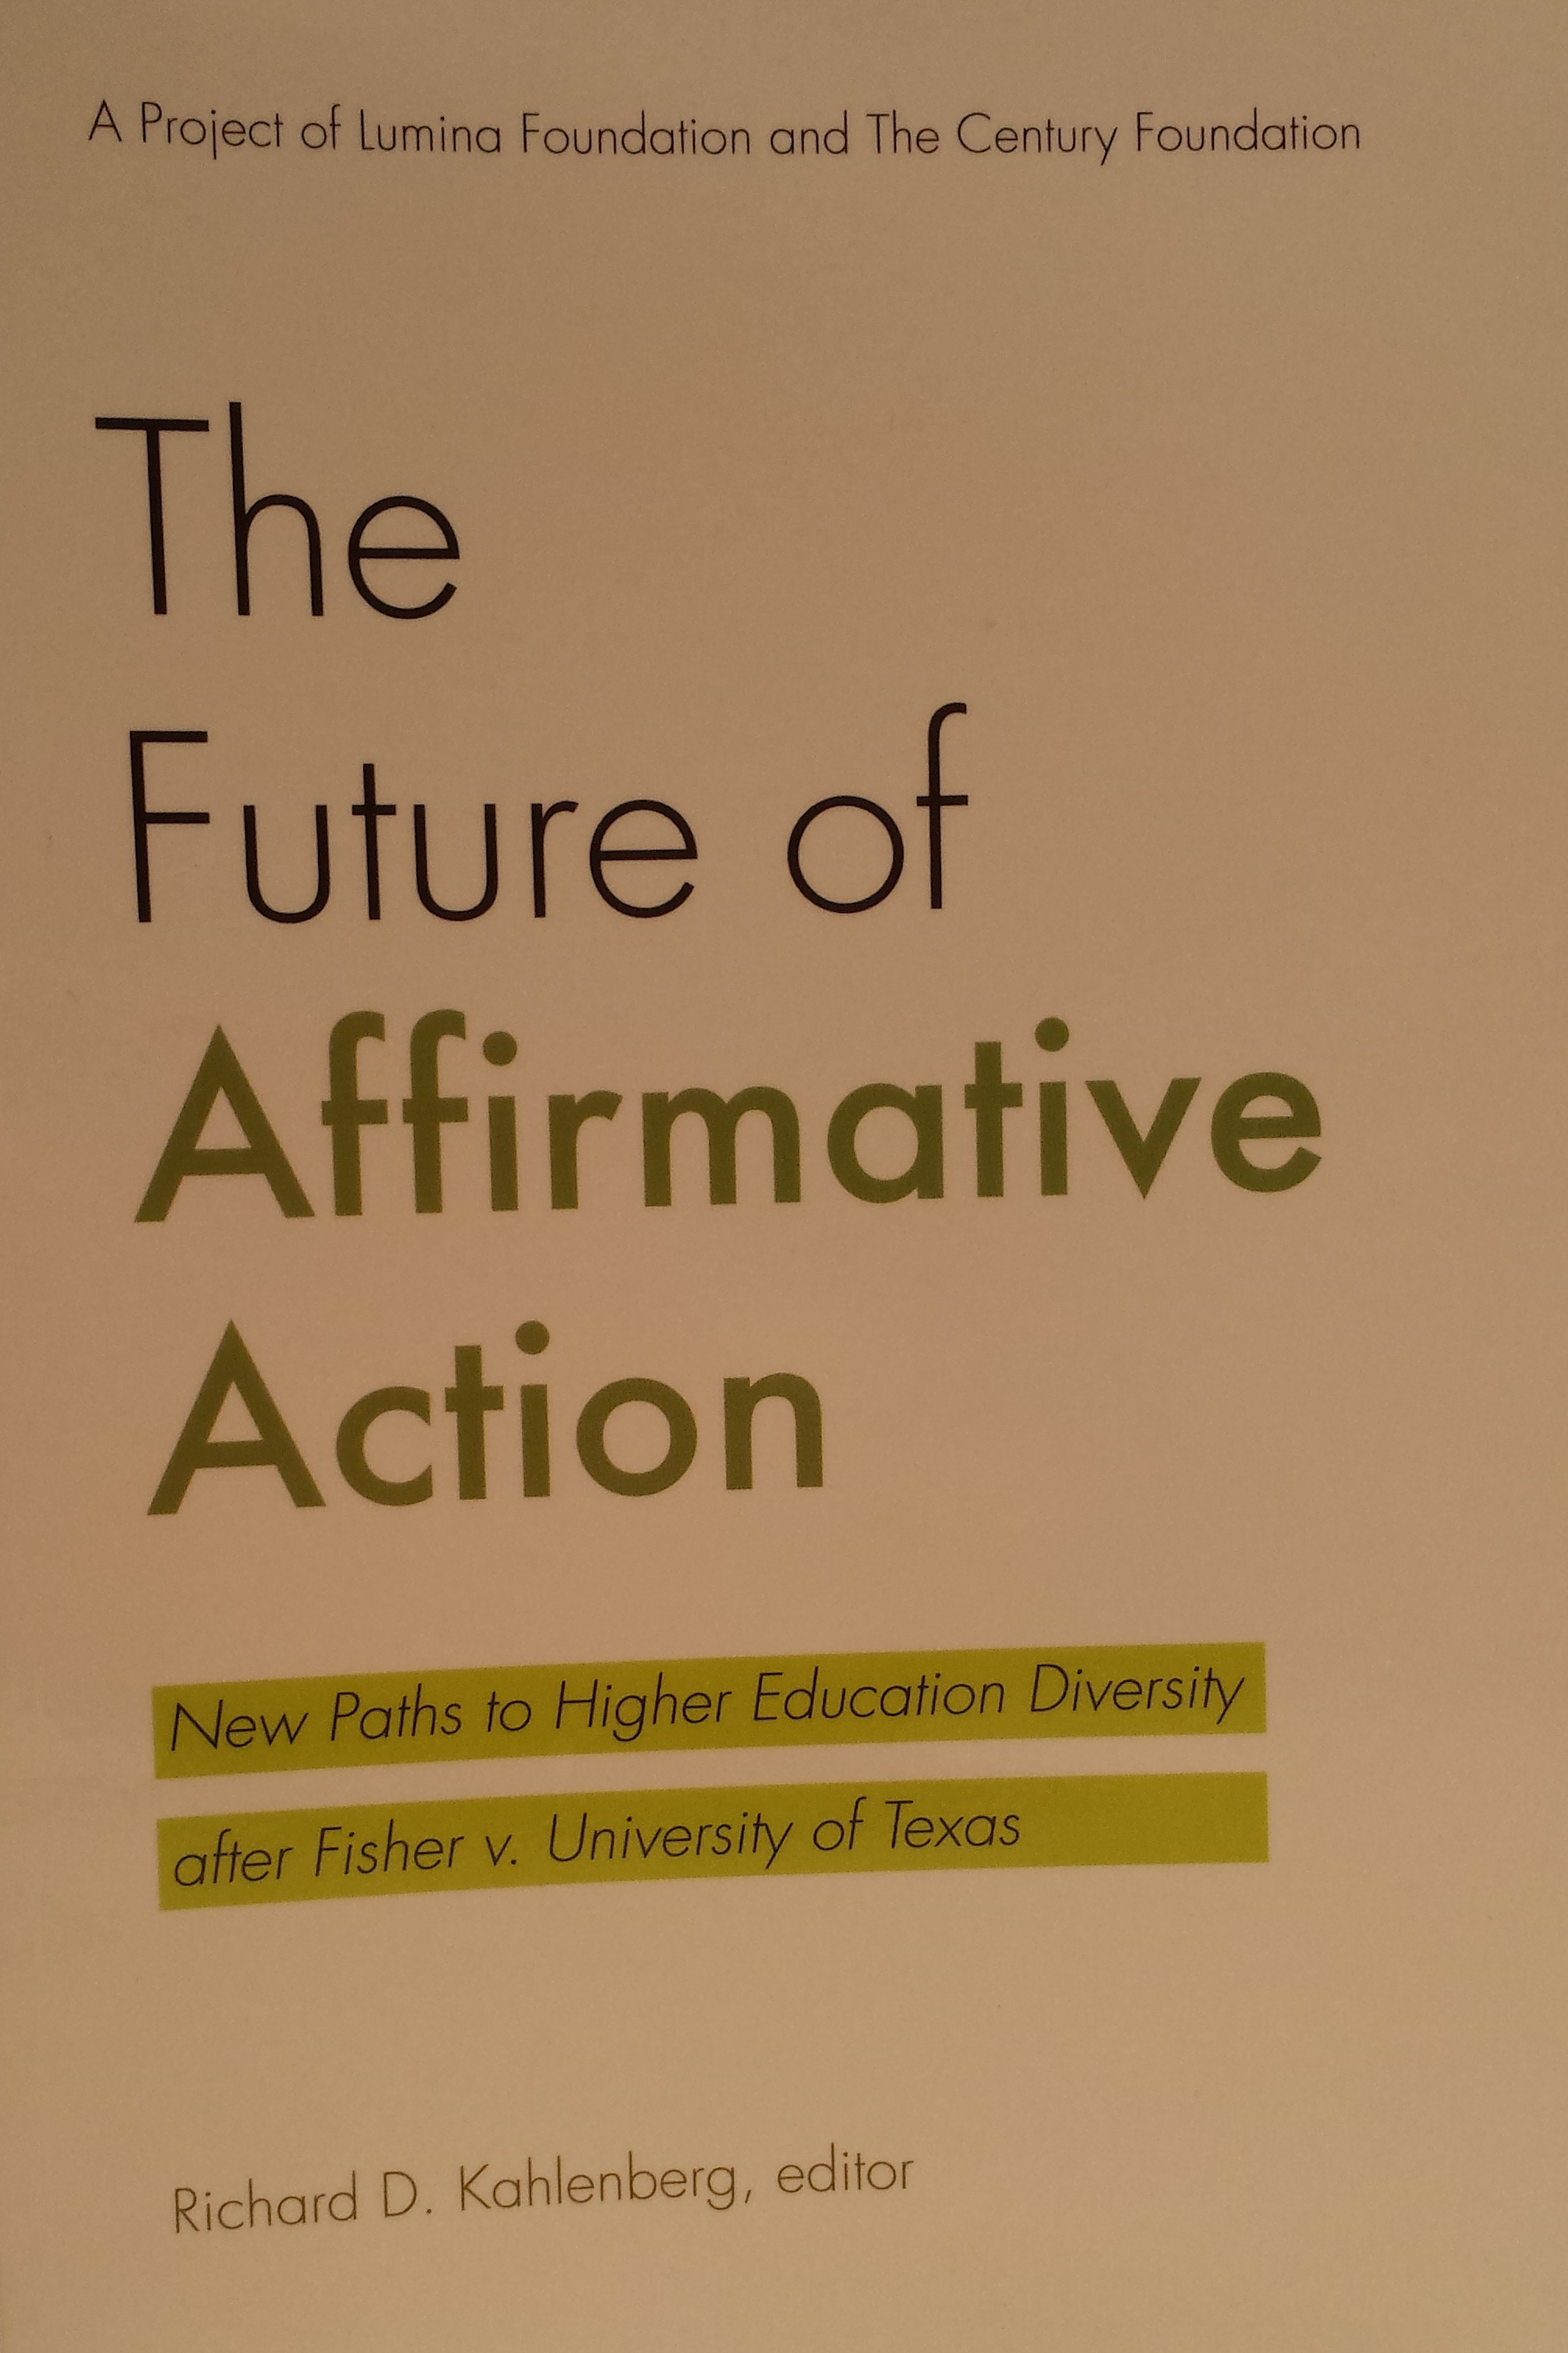 against affirmative action essay new book discusses diversity  new book discusses diversity strategies that don t consider race opinion on affirmative action